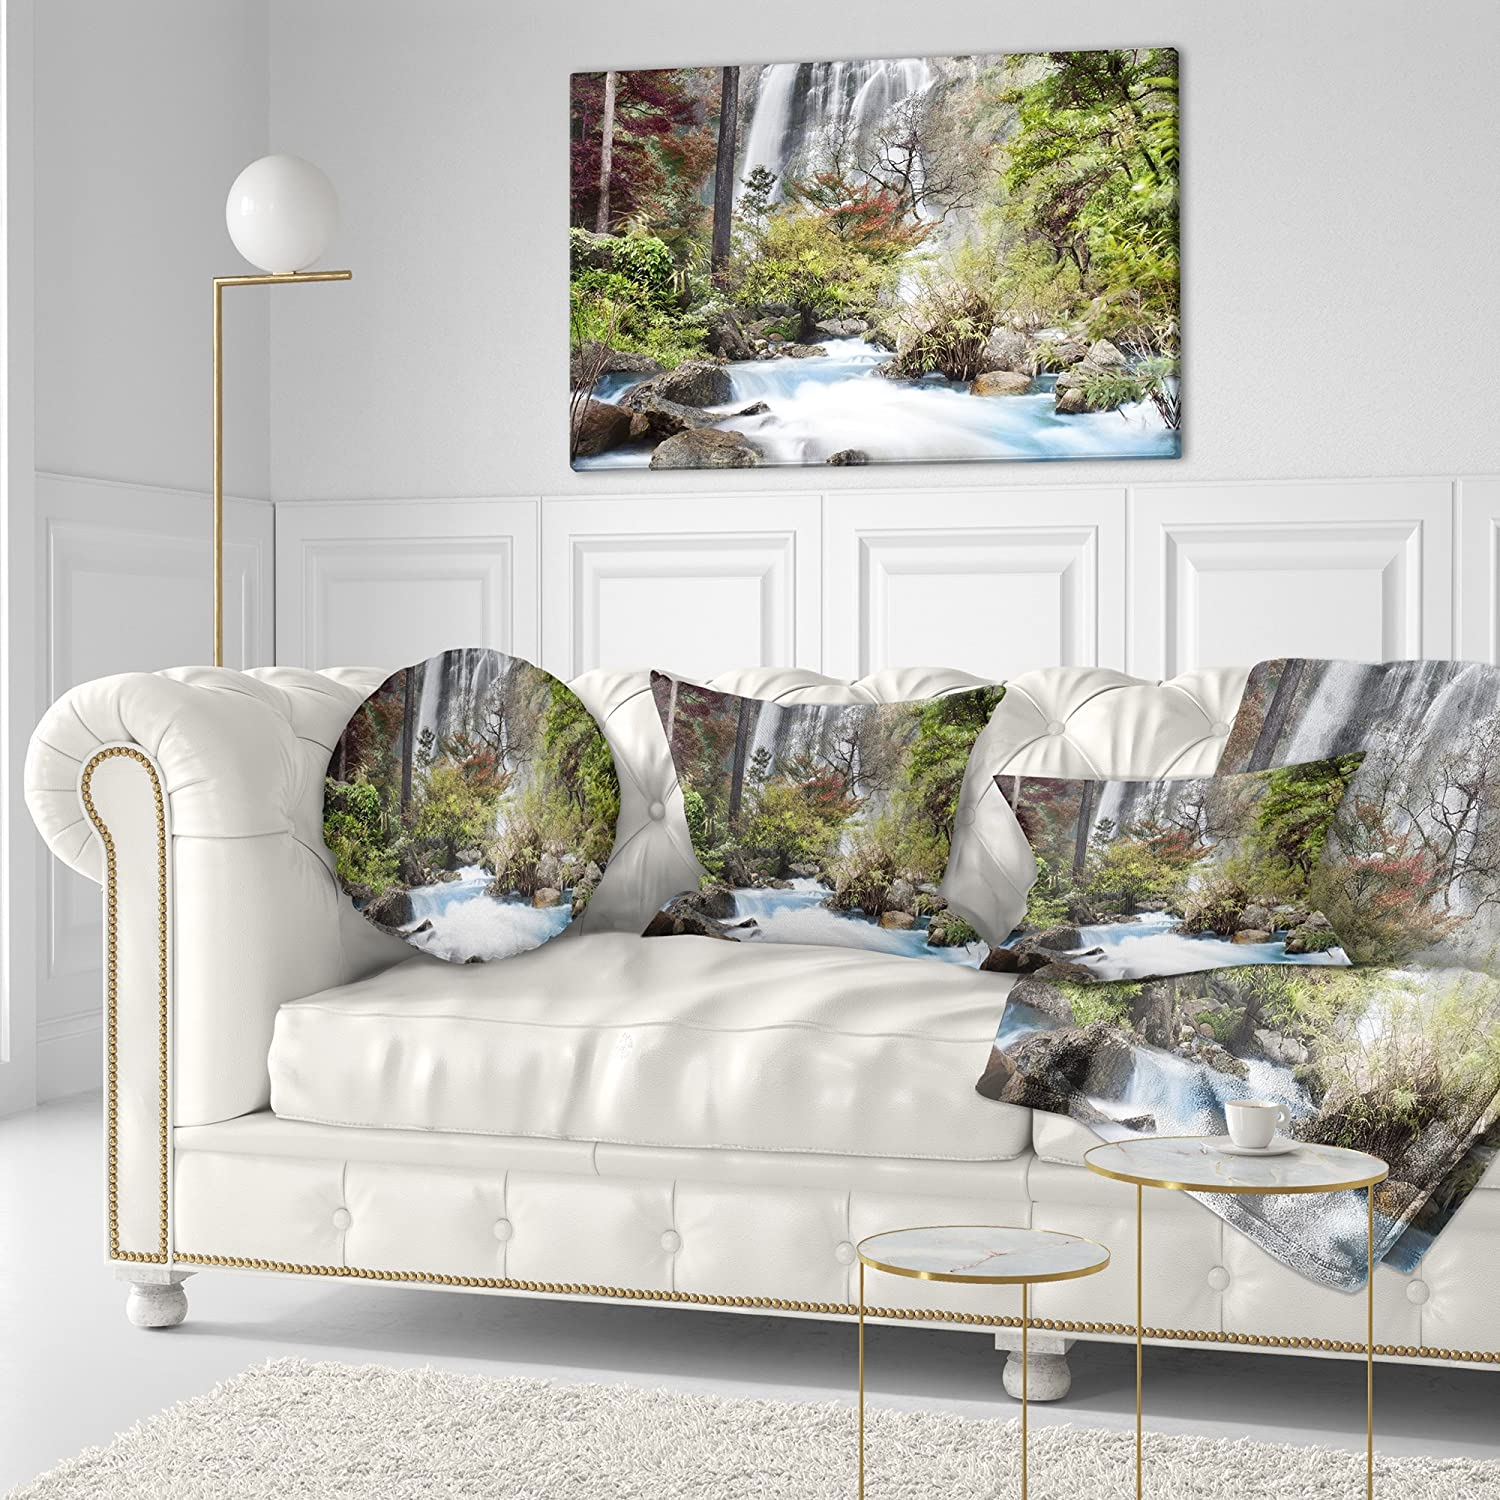 Insert Printed On Both Side Sofa Throw Pillow 20 Designart CU7121-20-20-C Blue Klonglan Waterfall Photography Round Cushion Cover for Living Room